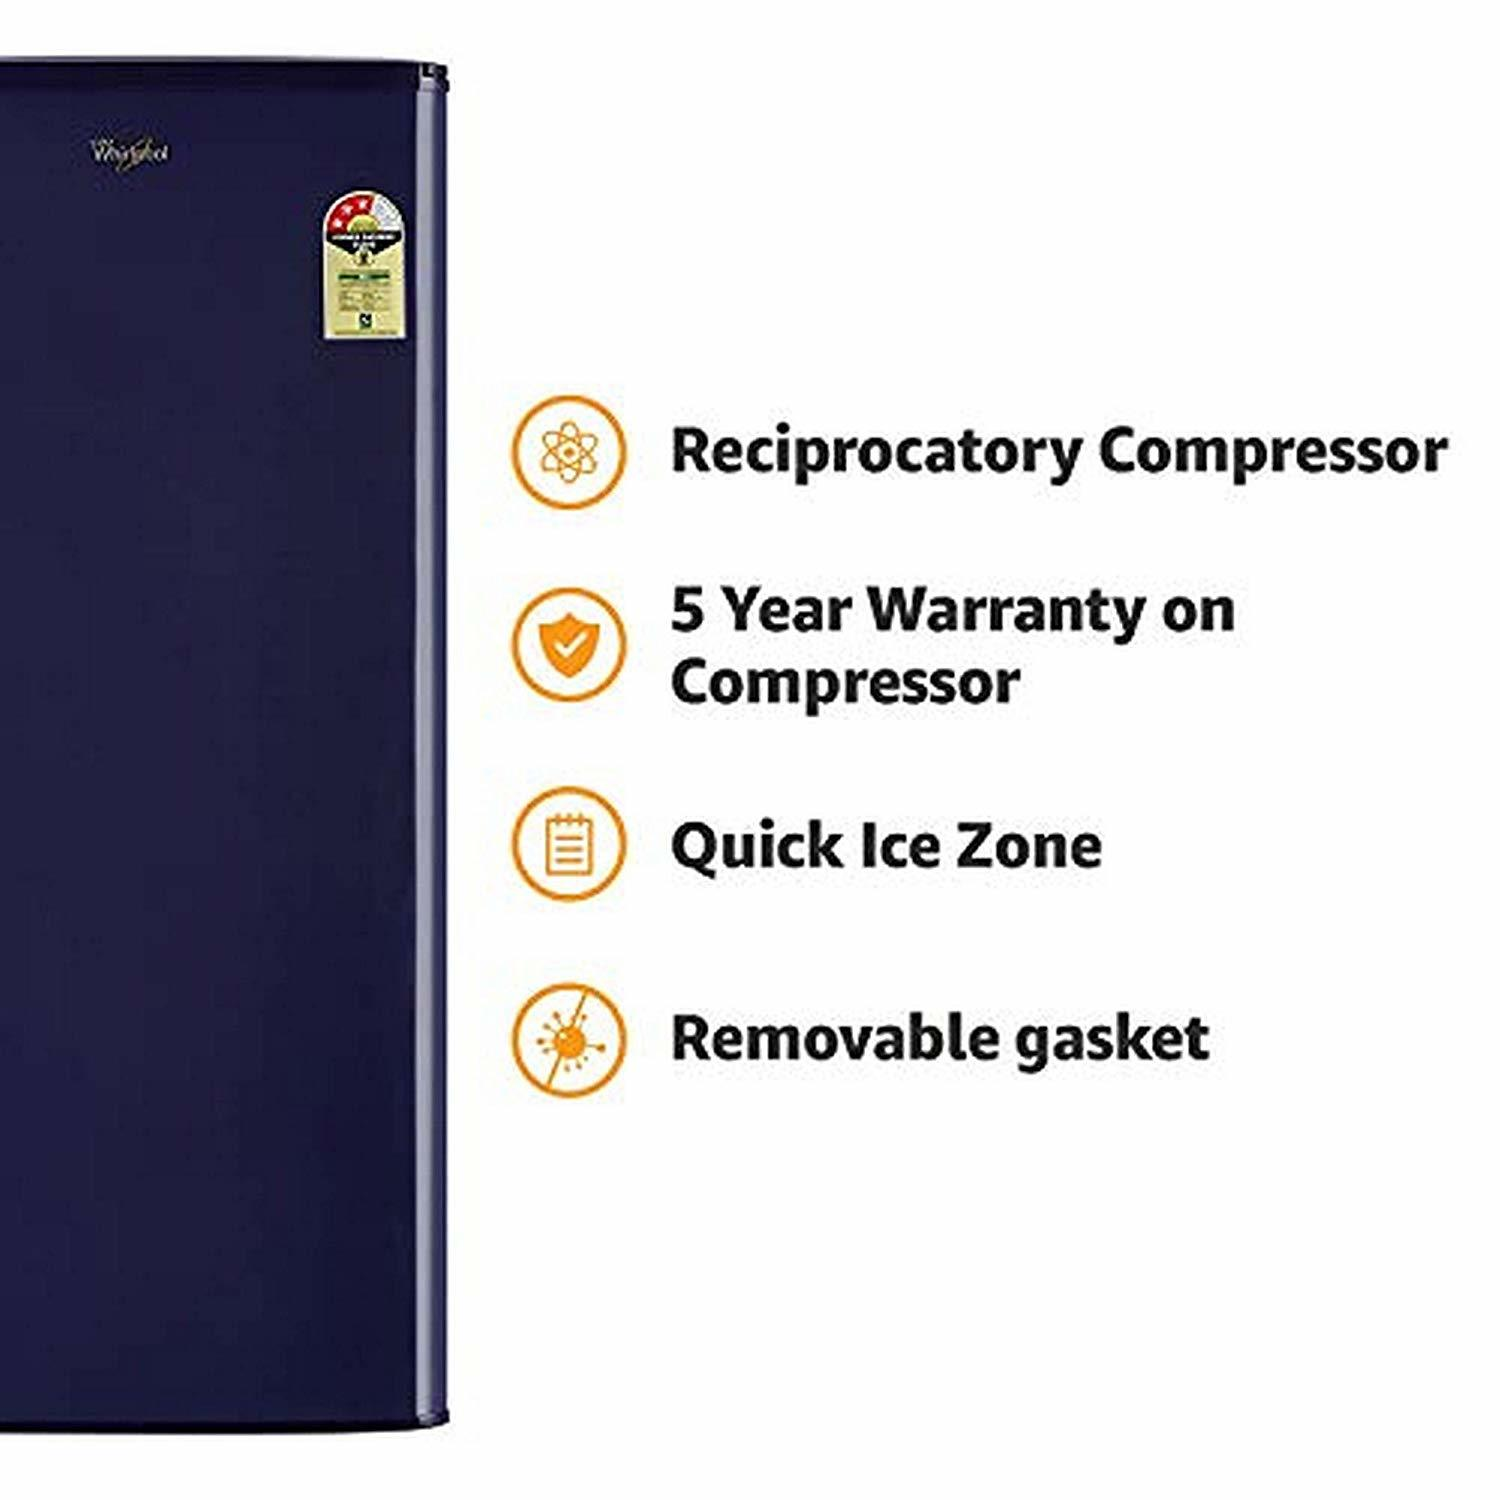 Whirlpool 190 L 3 Star ( 2019 ) Direct Cool Single Door Refrigerator(WDE 205 CLS 3S BLUE-E, Blue)